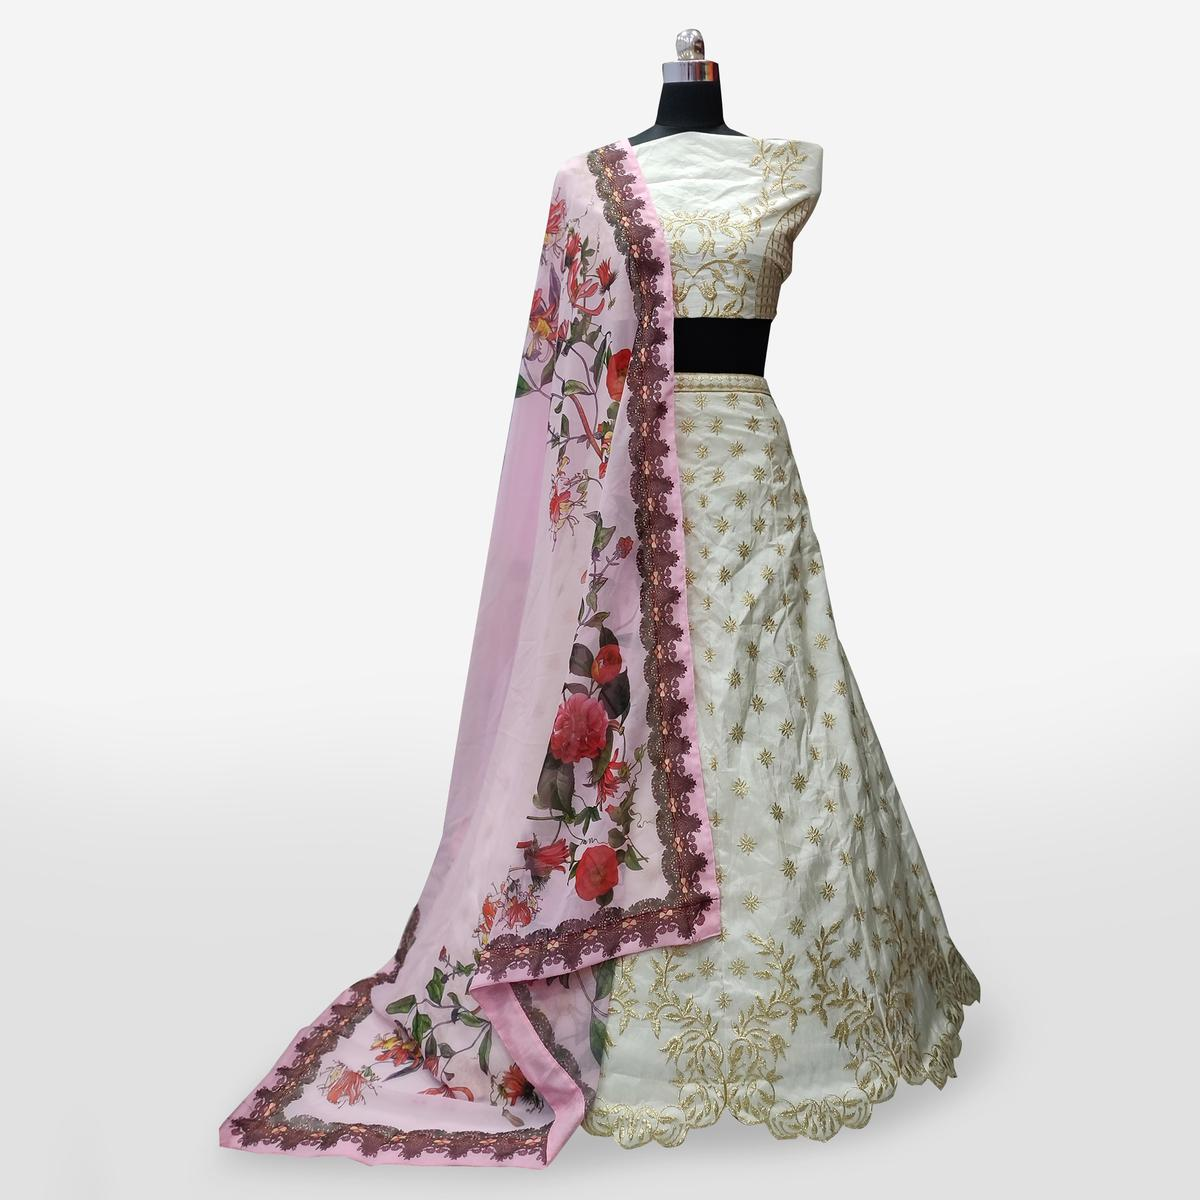 Attractive Off-White Colored Partywear Embroidered Banarasi Silk Lehenga Choli